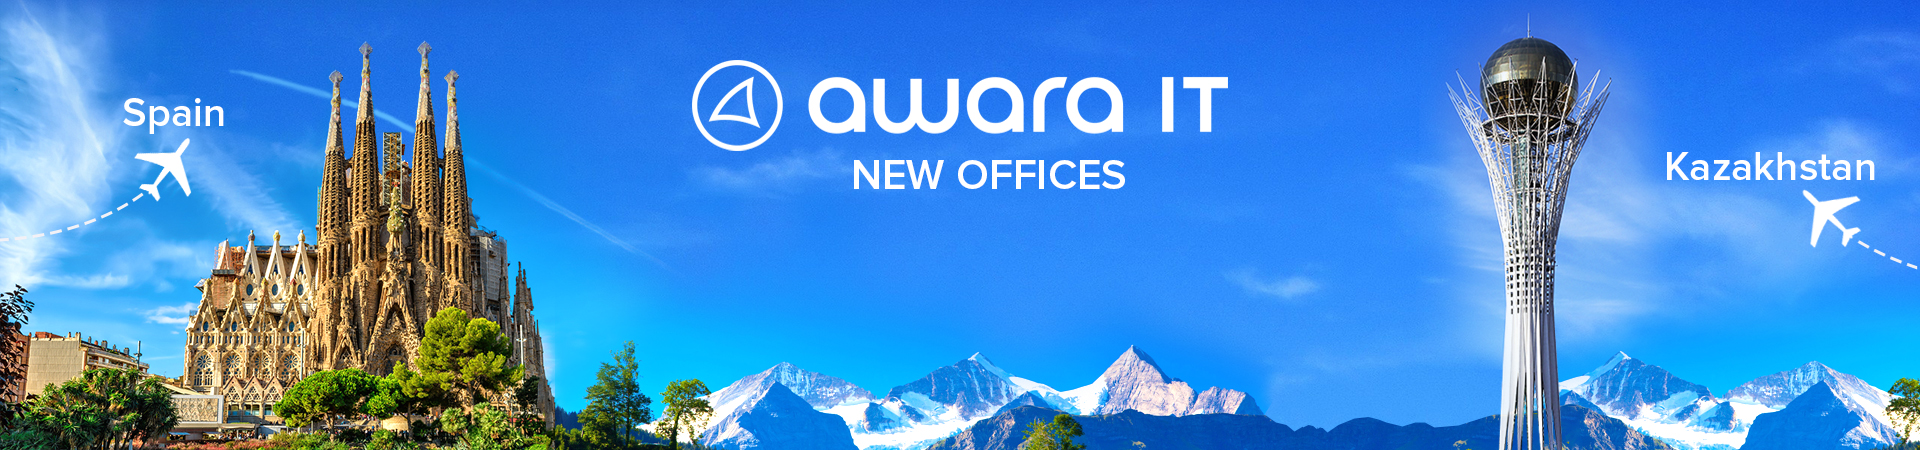 Awara IT New Offices